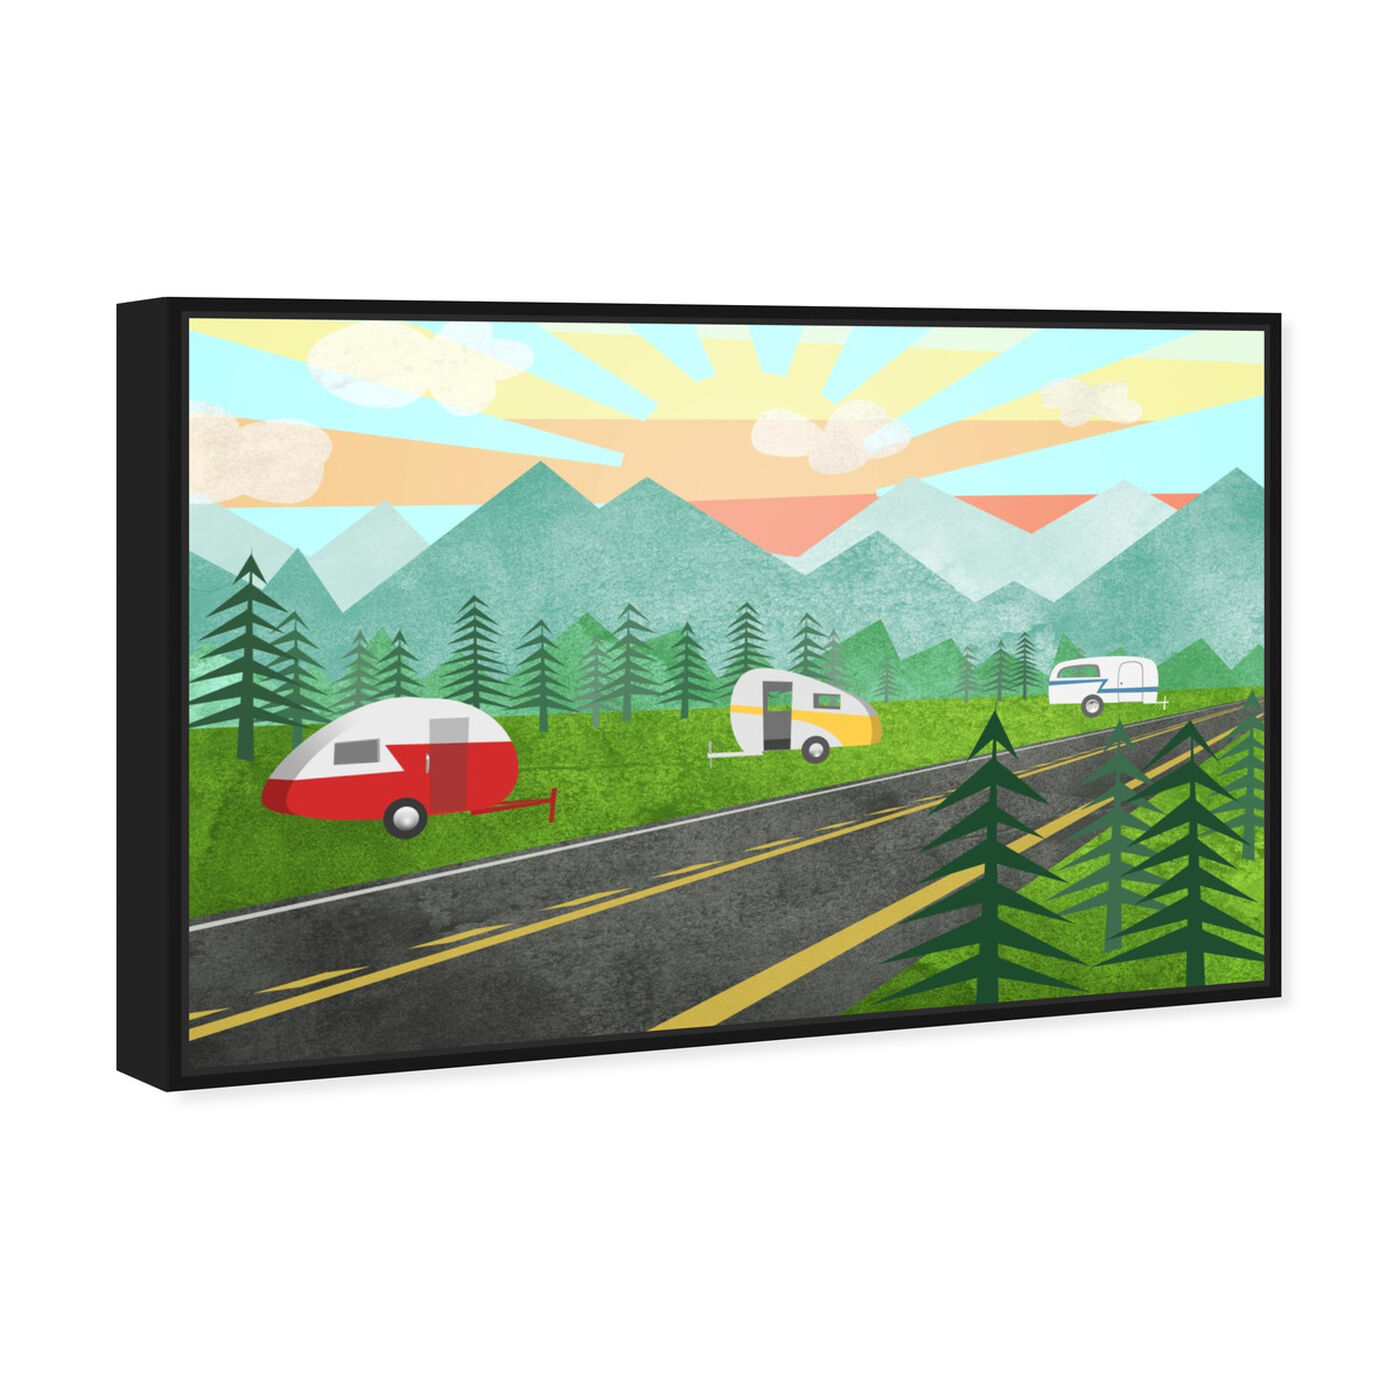 Angled view of Campers In the Wild featuring entertainment and hobbies and camping art.